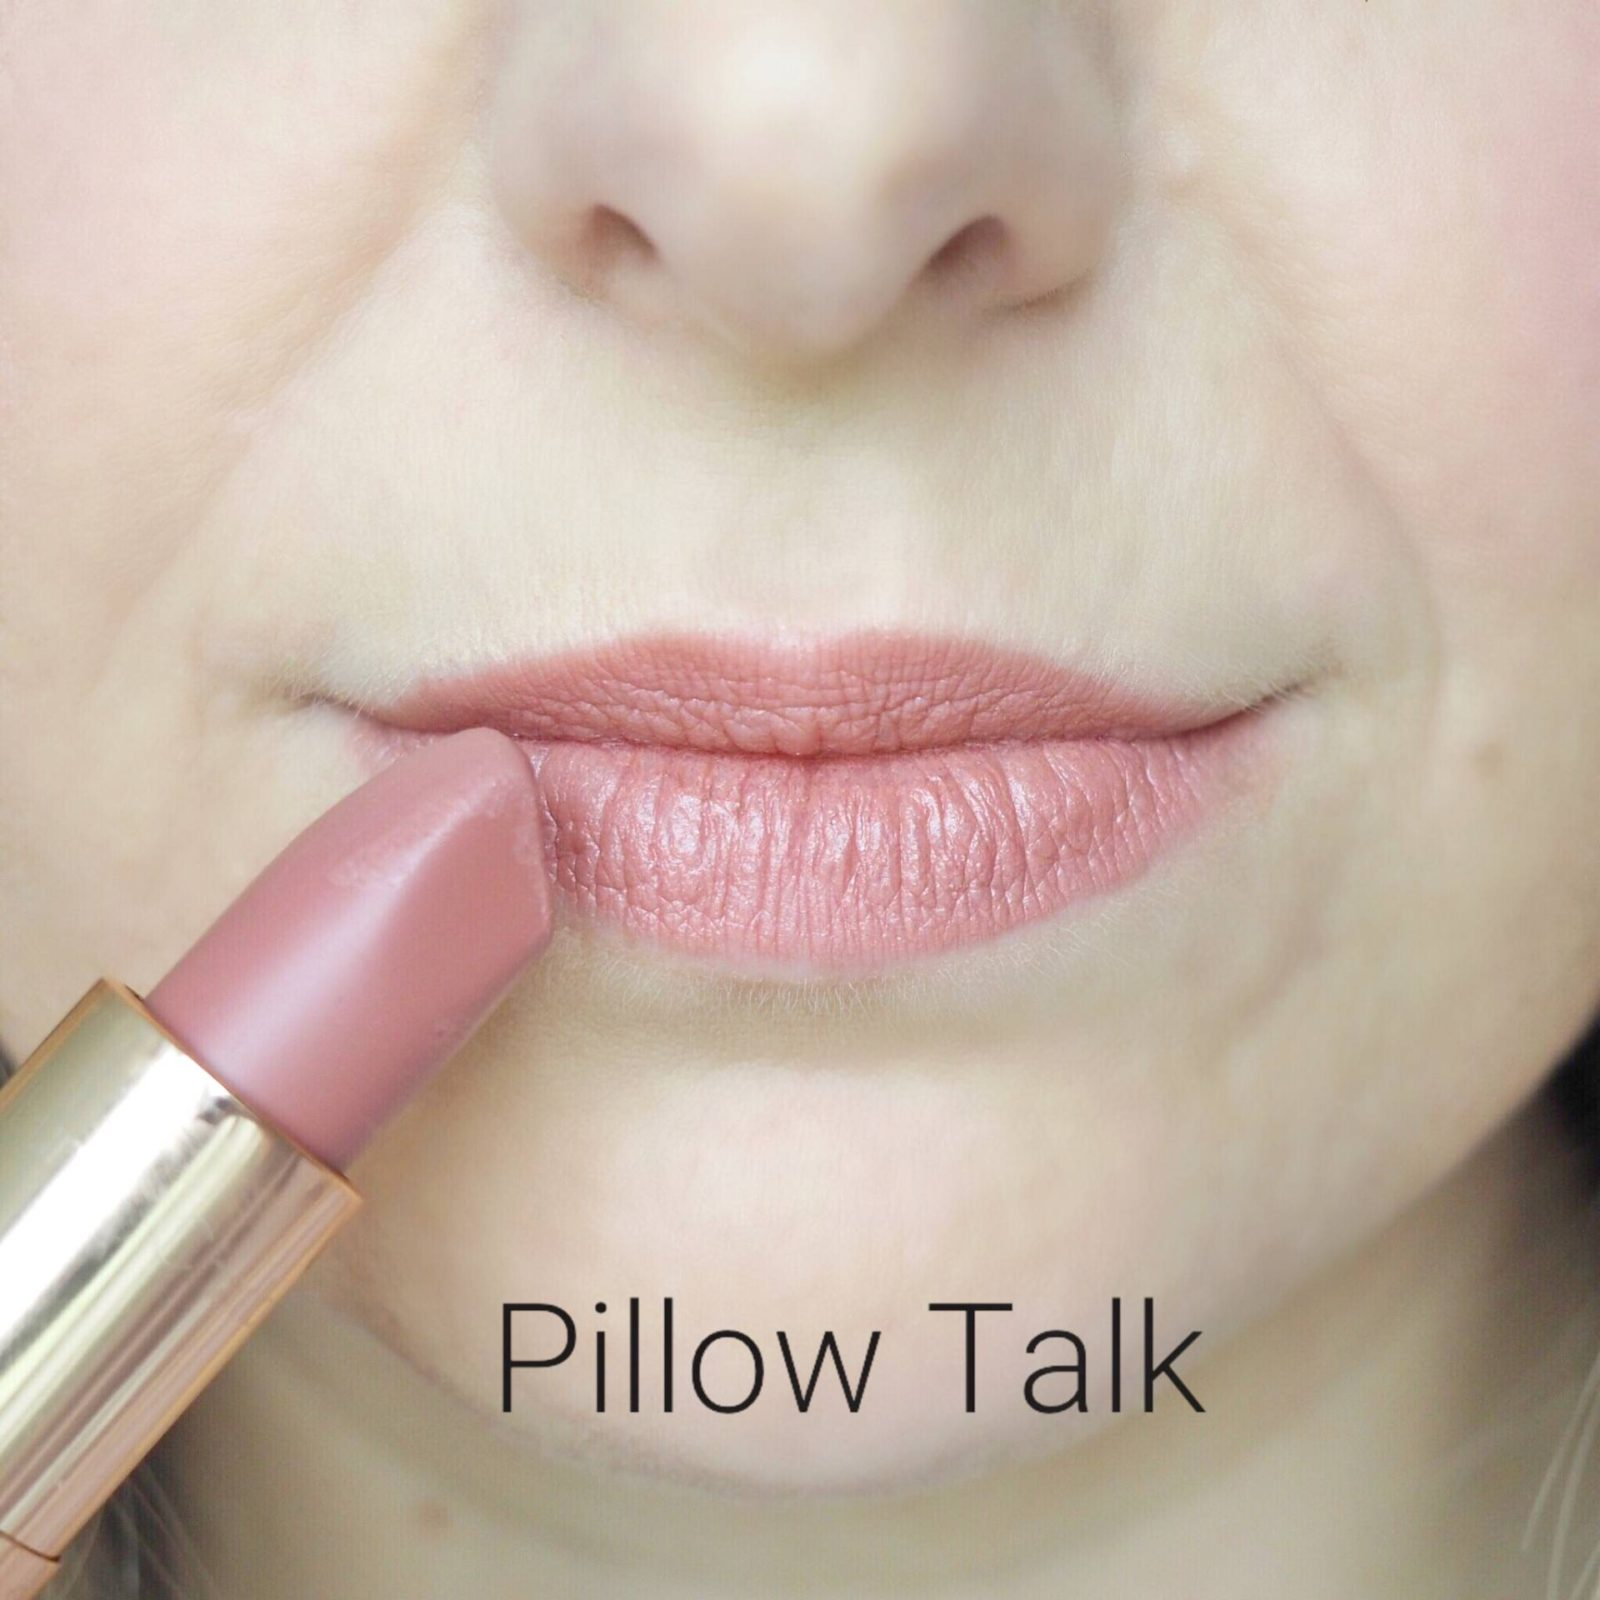 Charlotte Tilbury Pillow Talk Lipstick Swatches